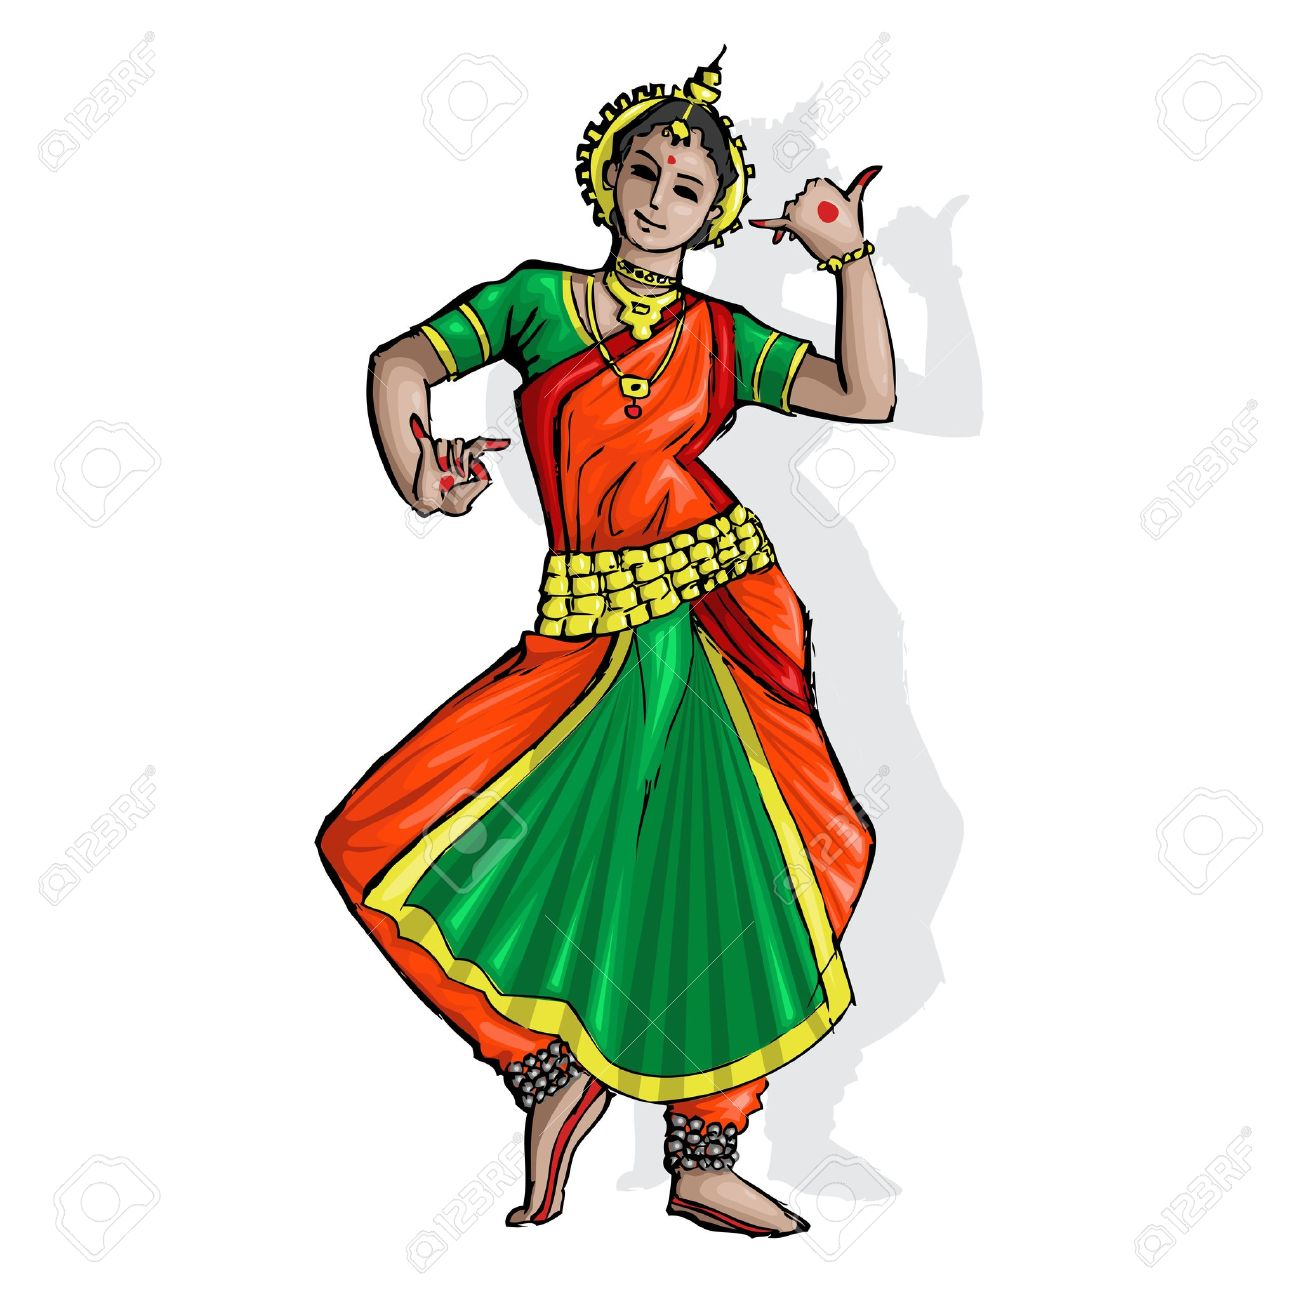 Traditional dance clipart image transparent Cultural dance clipart - ClipartFest image transparent